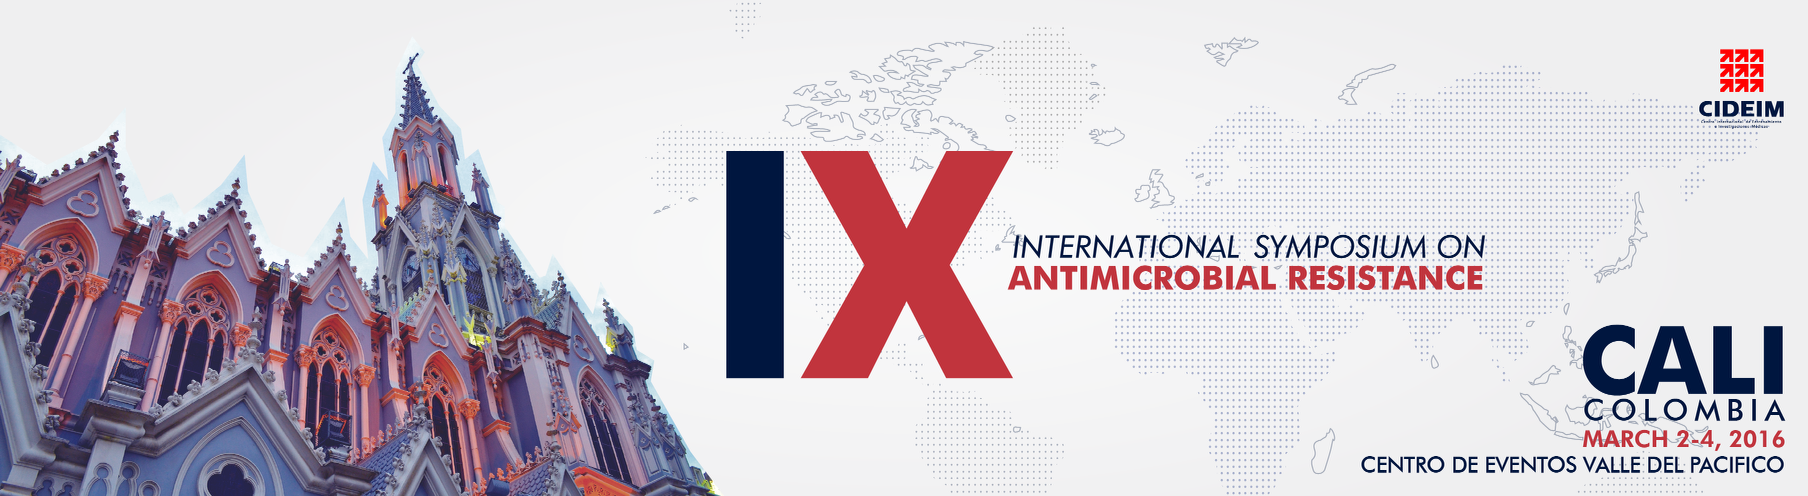 IX International Symposium on Antimicrobial Resistance